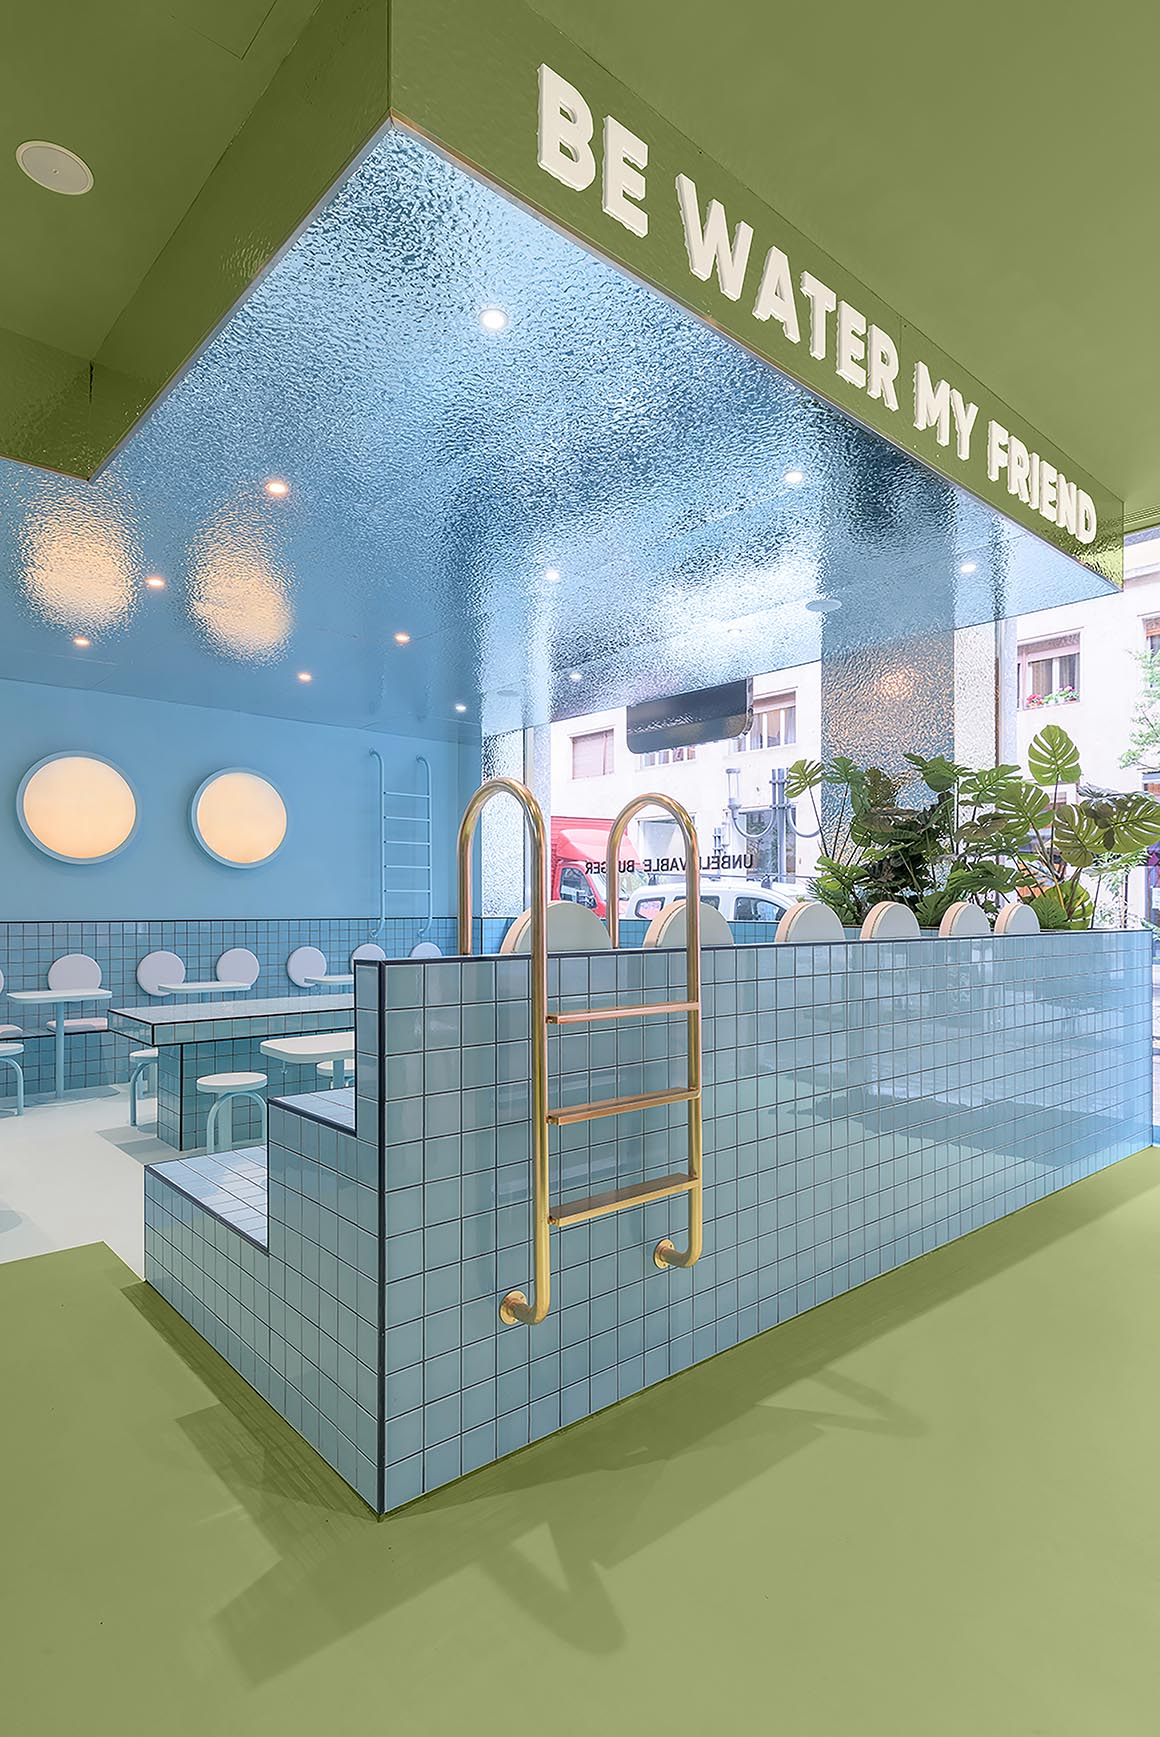 A modern restaurant interior with blue section inspired by a swimming pool.